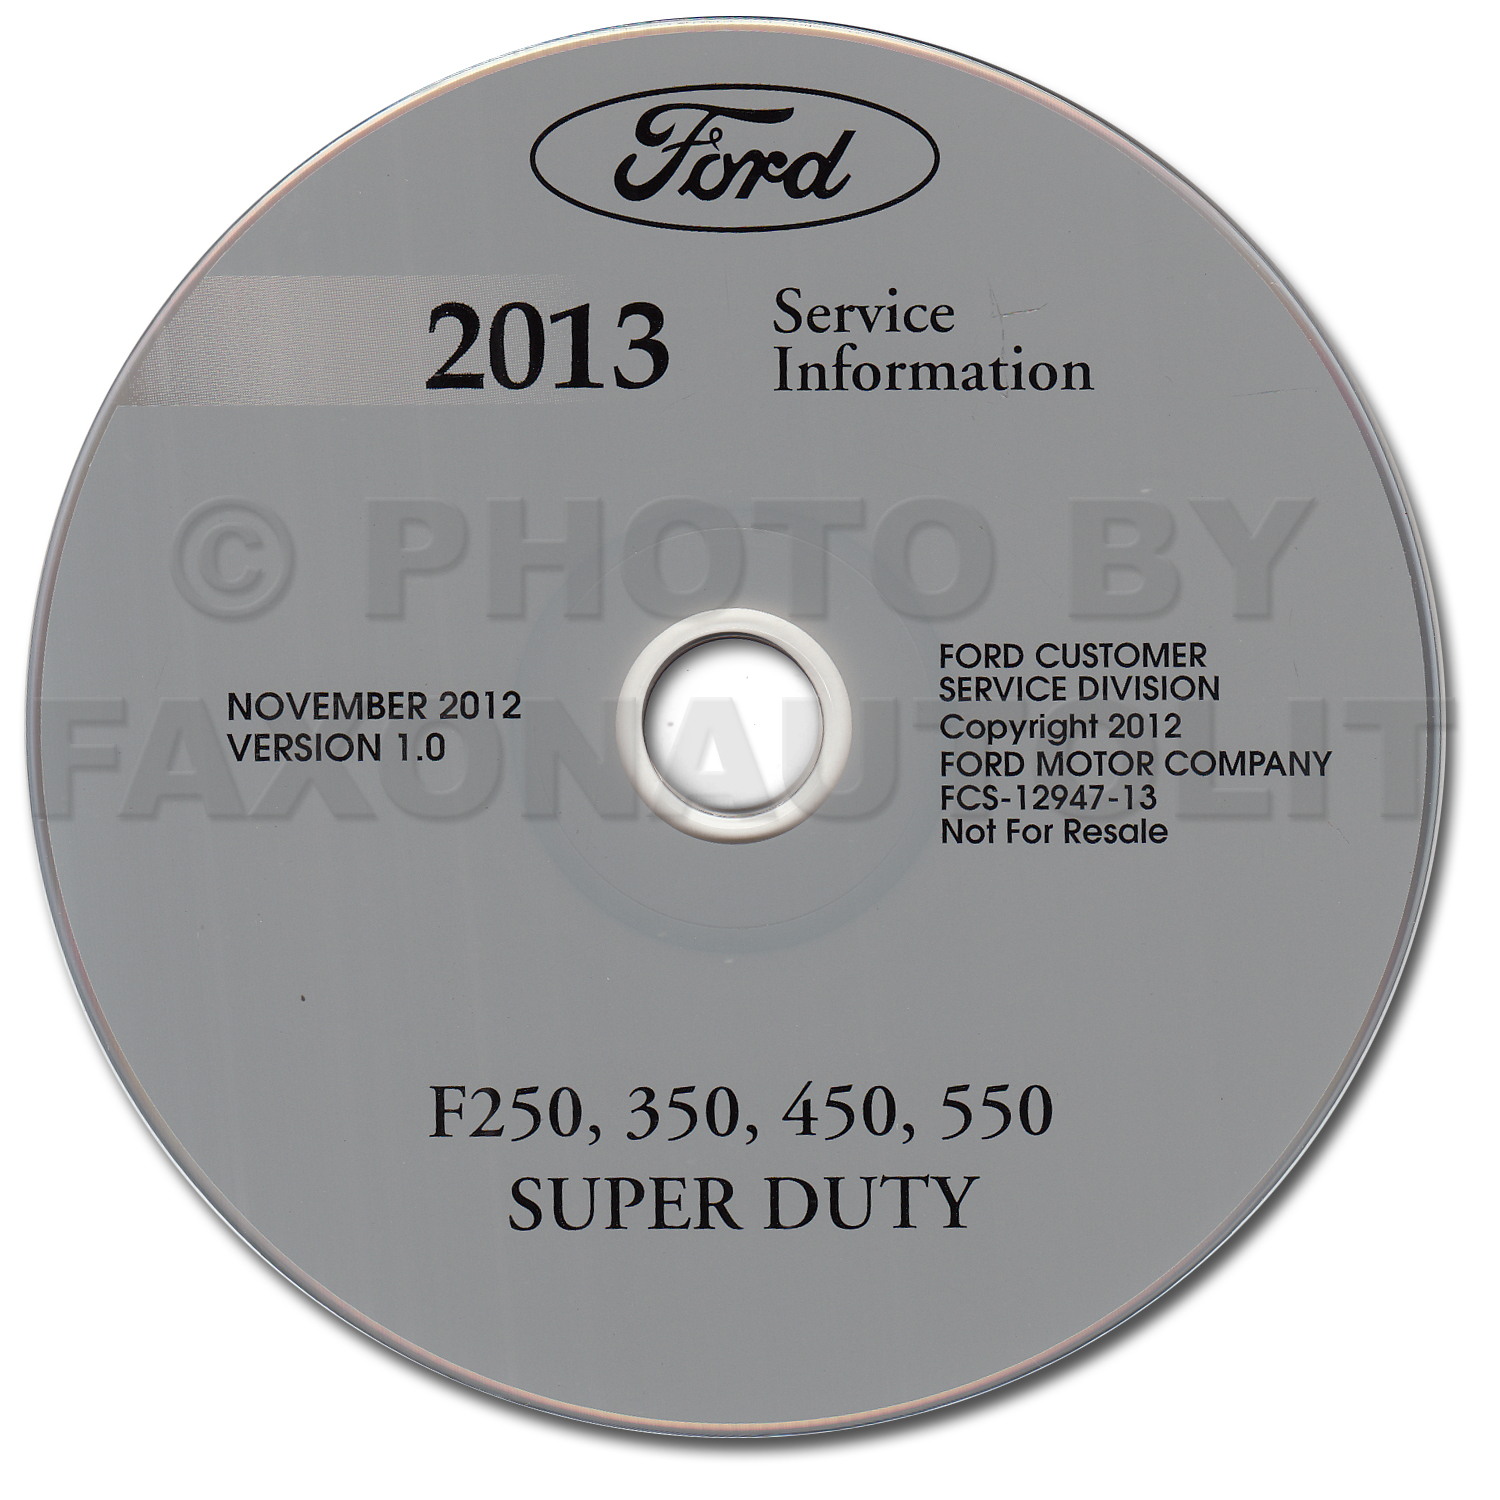 2013 Ford F250 F350 F450 F550 Super Duty Truck Repair Shop Manual on CD-ROM Original